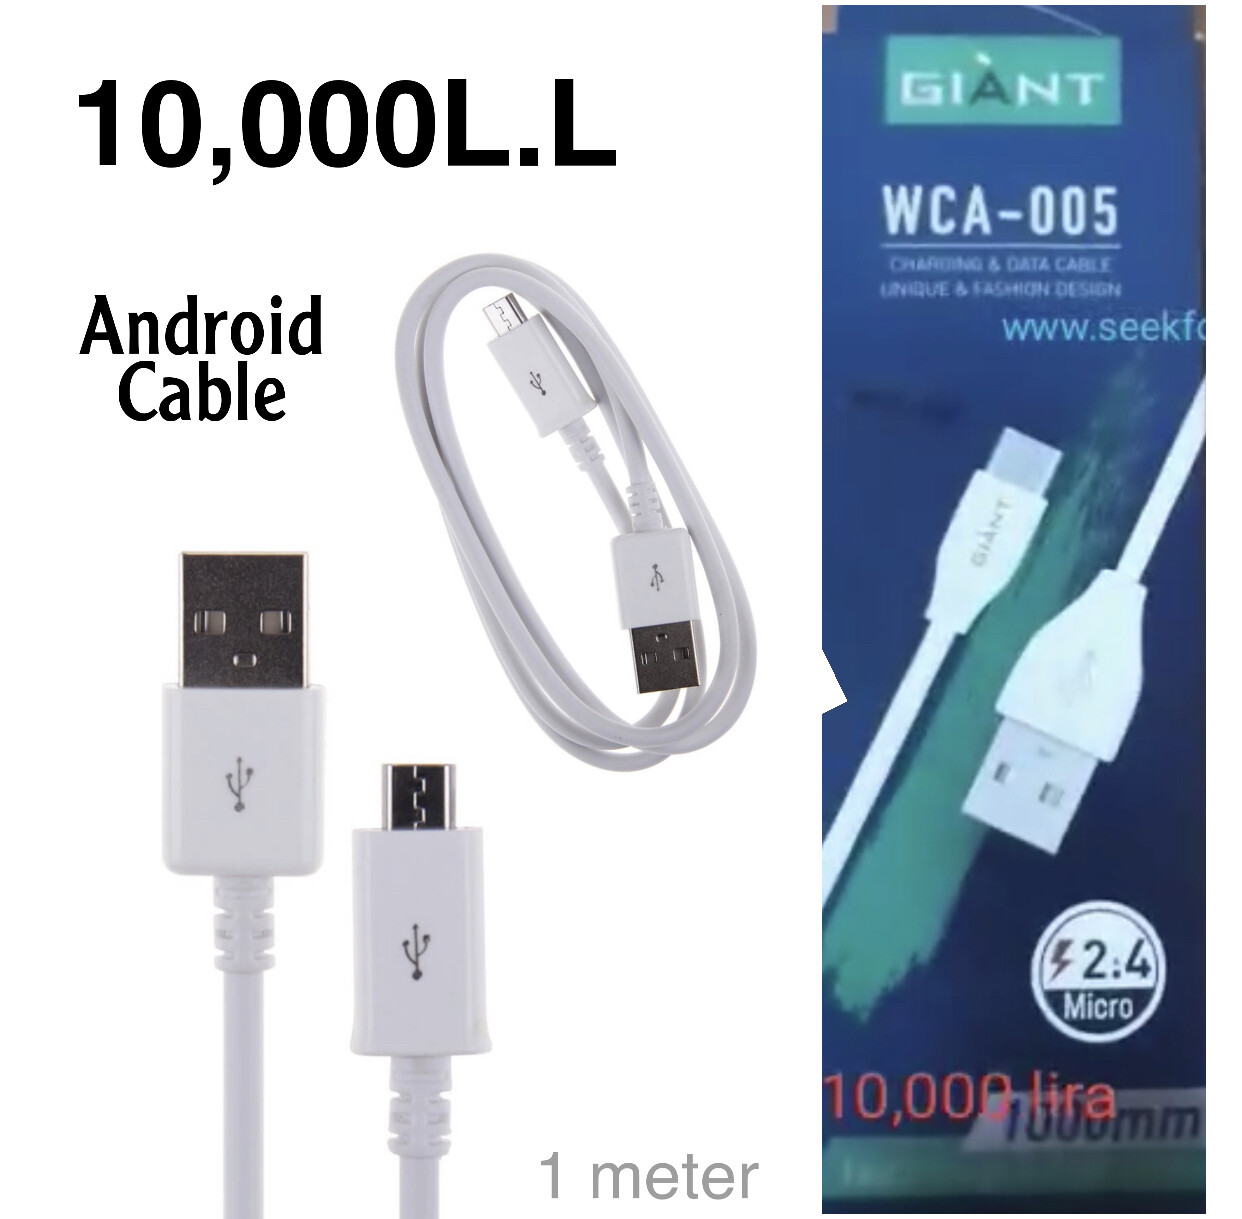 Android Cable